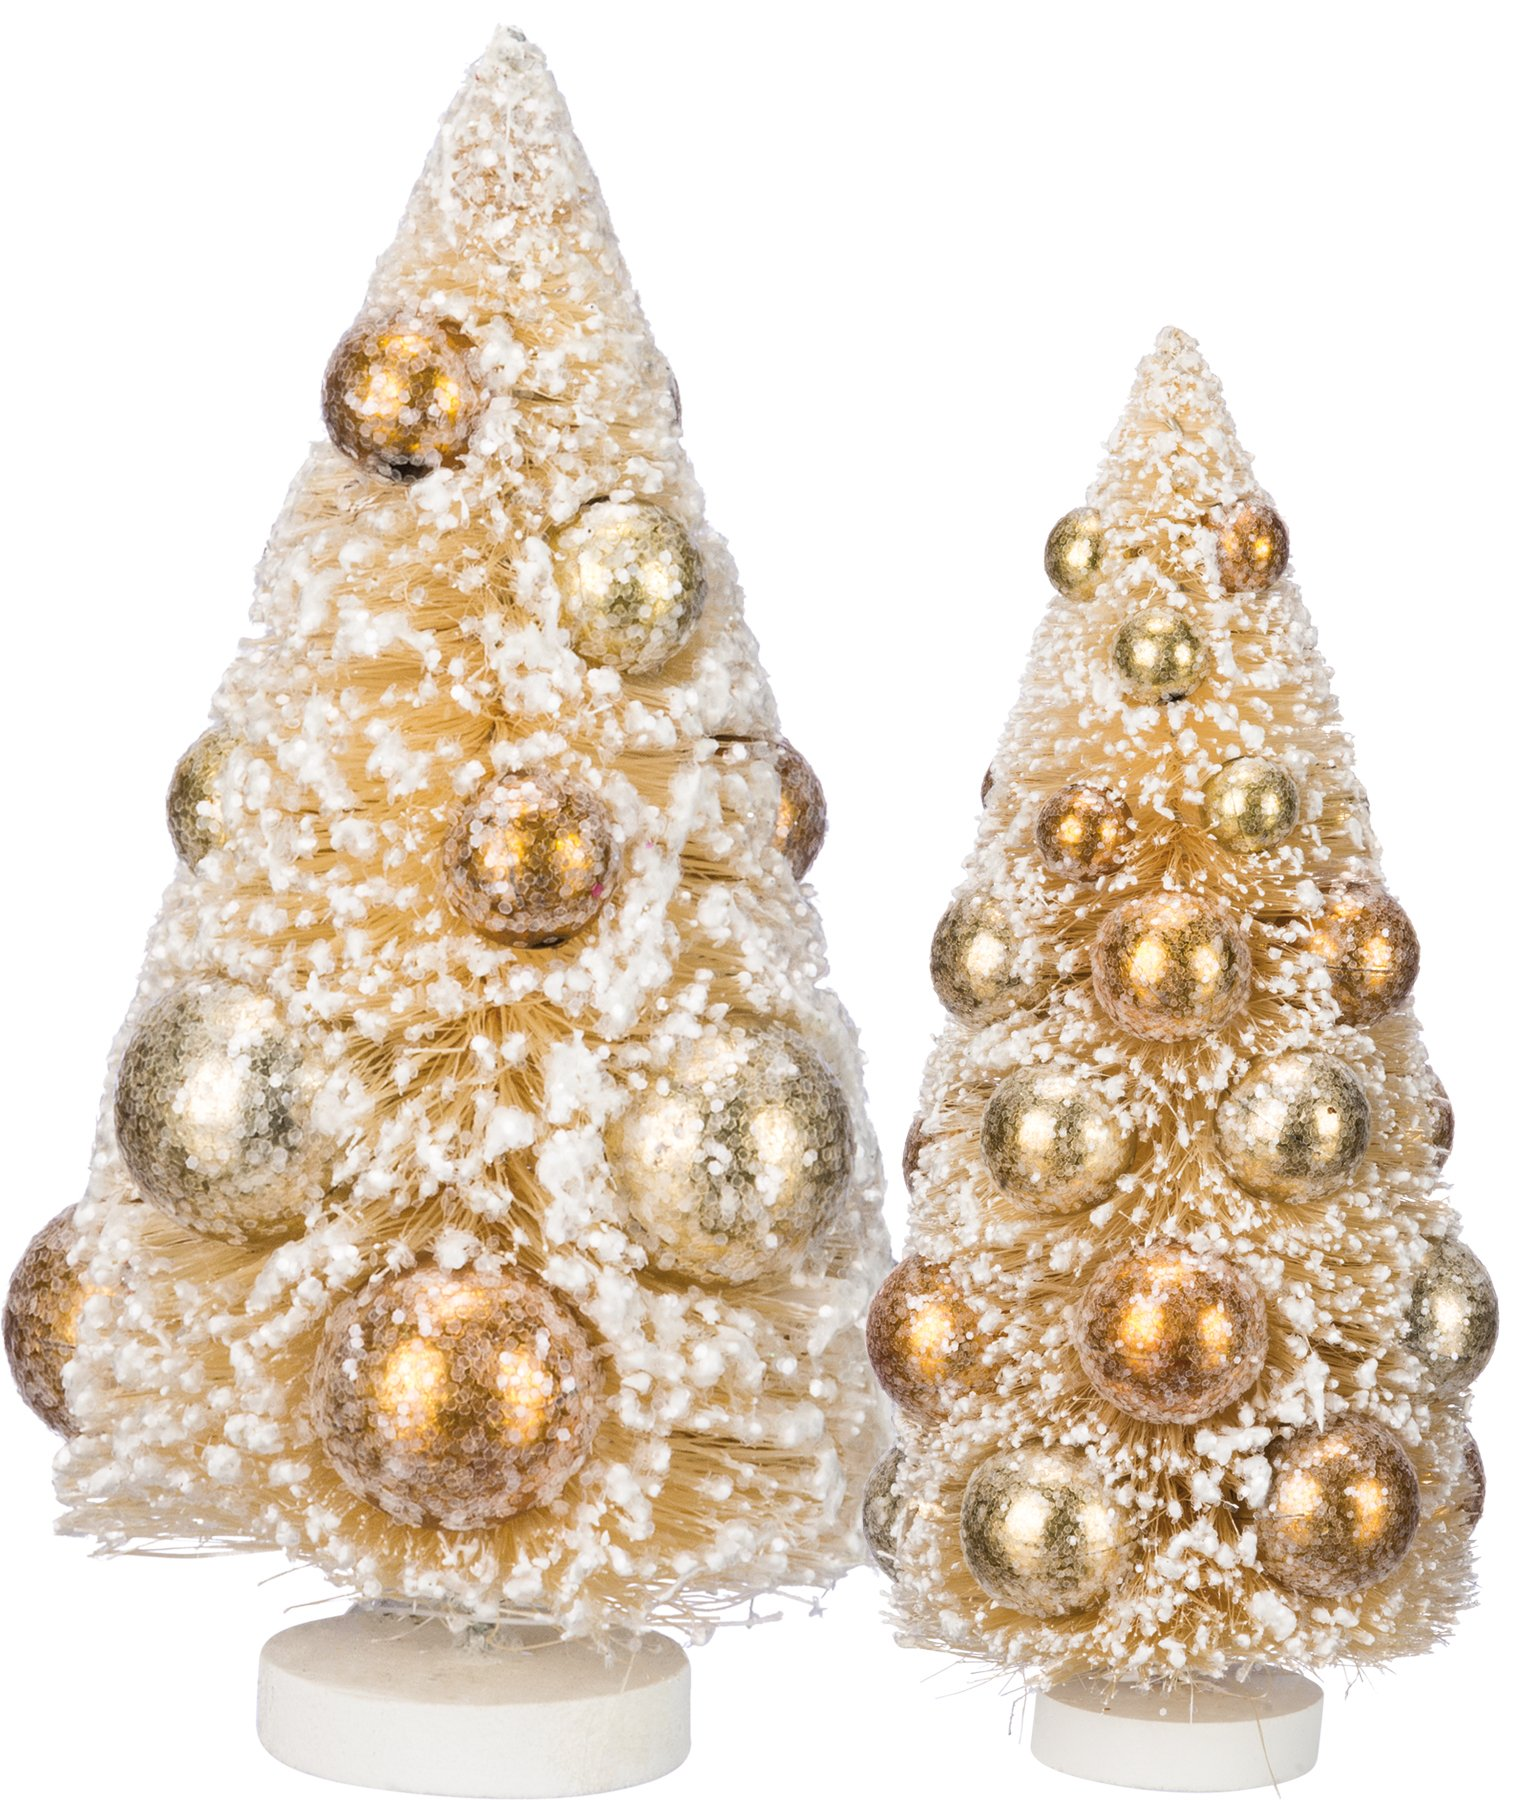 Primitives By Kathy Sisal Tree 6 Inches Tall and 9 Inches Tall Plastic Set Of 2 Seasonal Decor